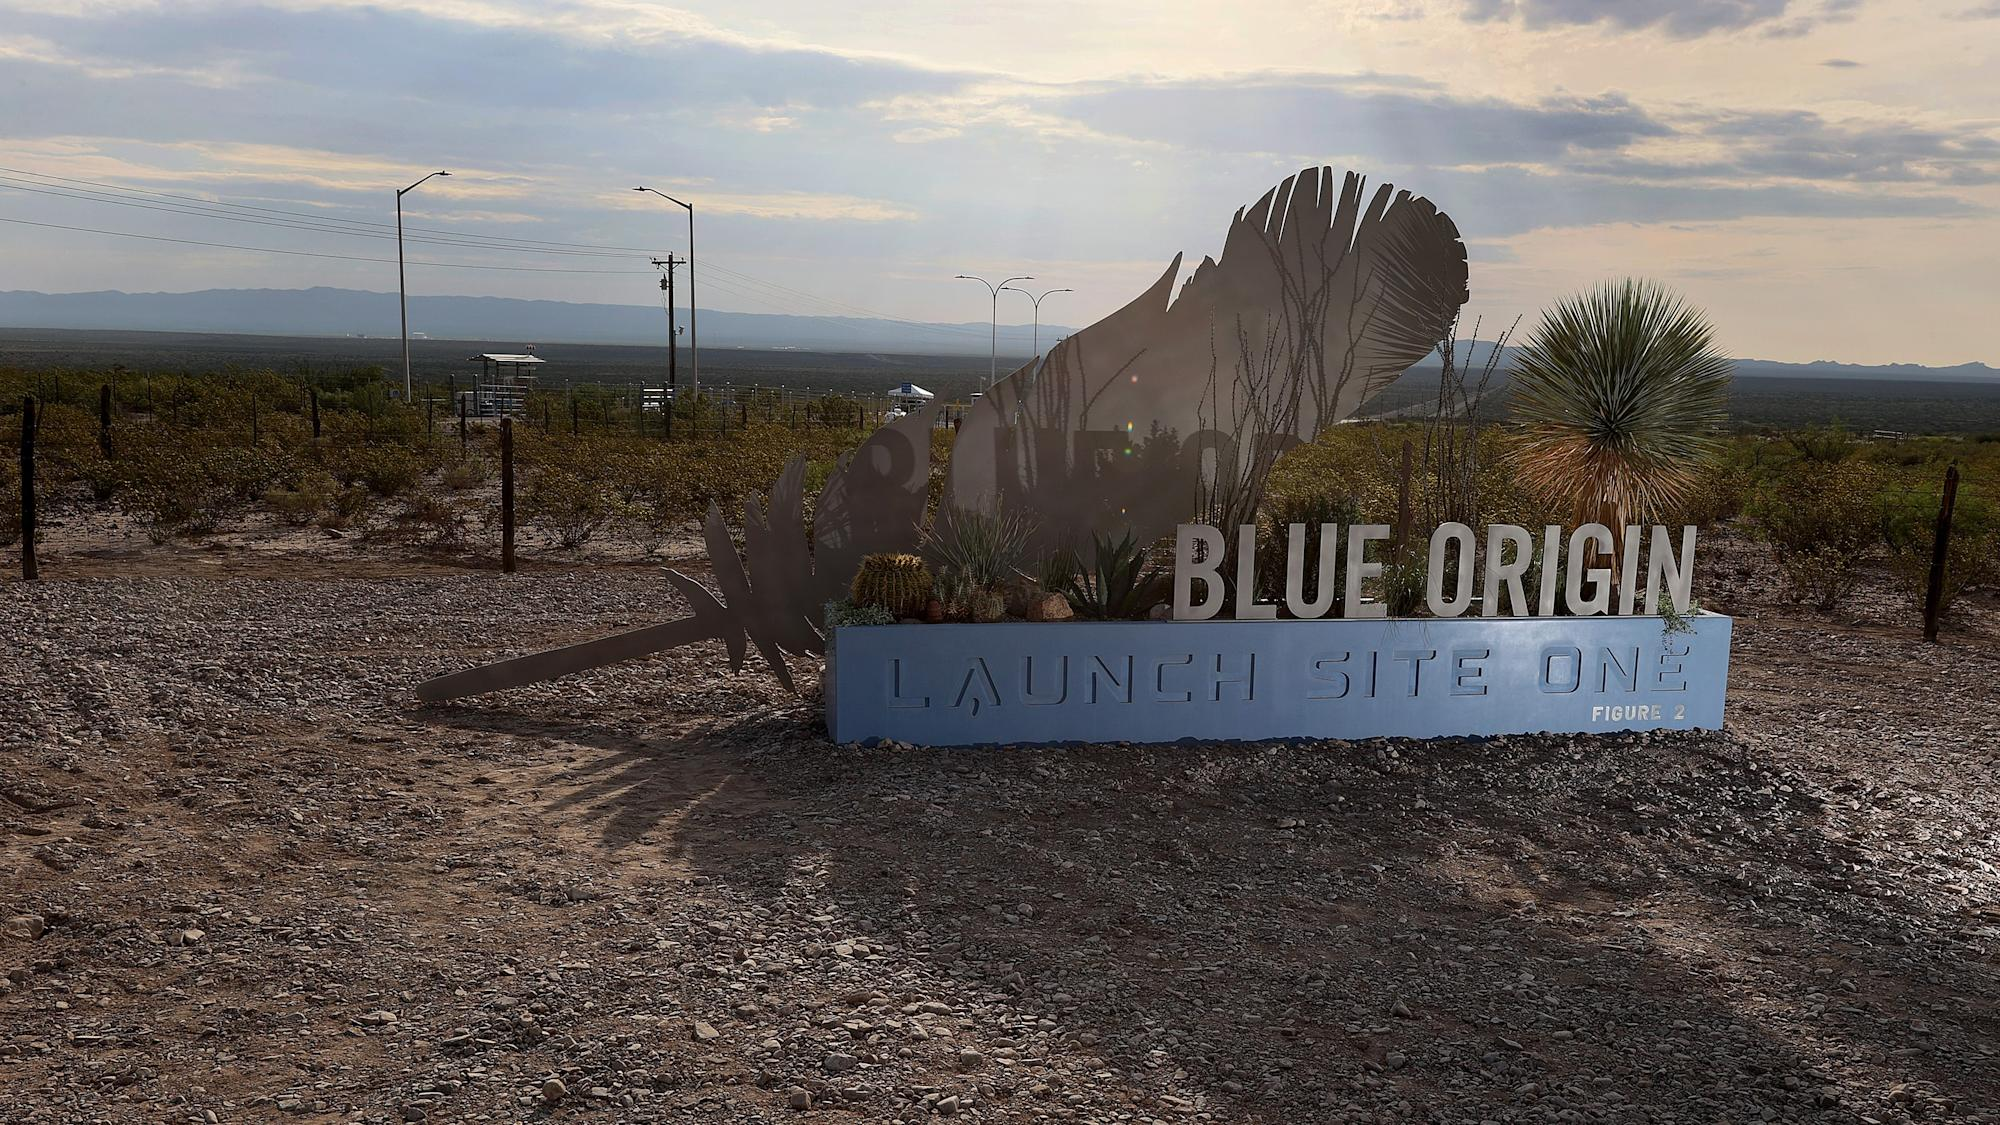 UPDATE 1-Blue Origin sees clear skies for inaugural space flight by Bezos and crewmates